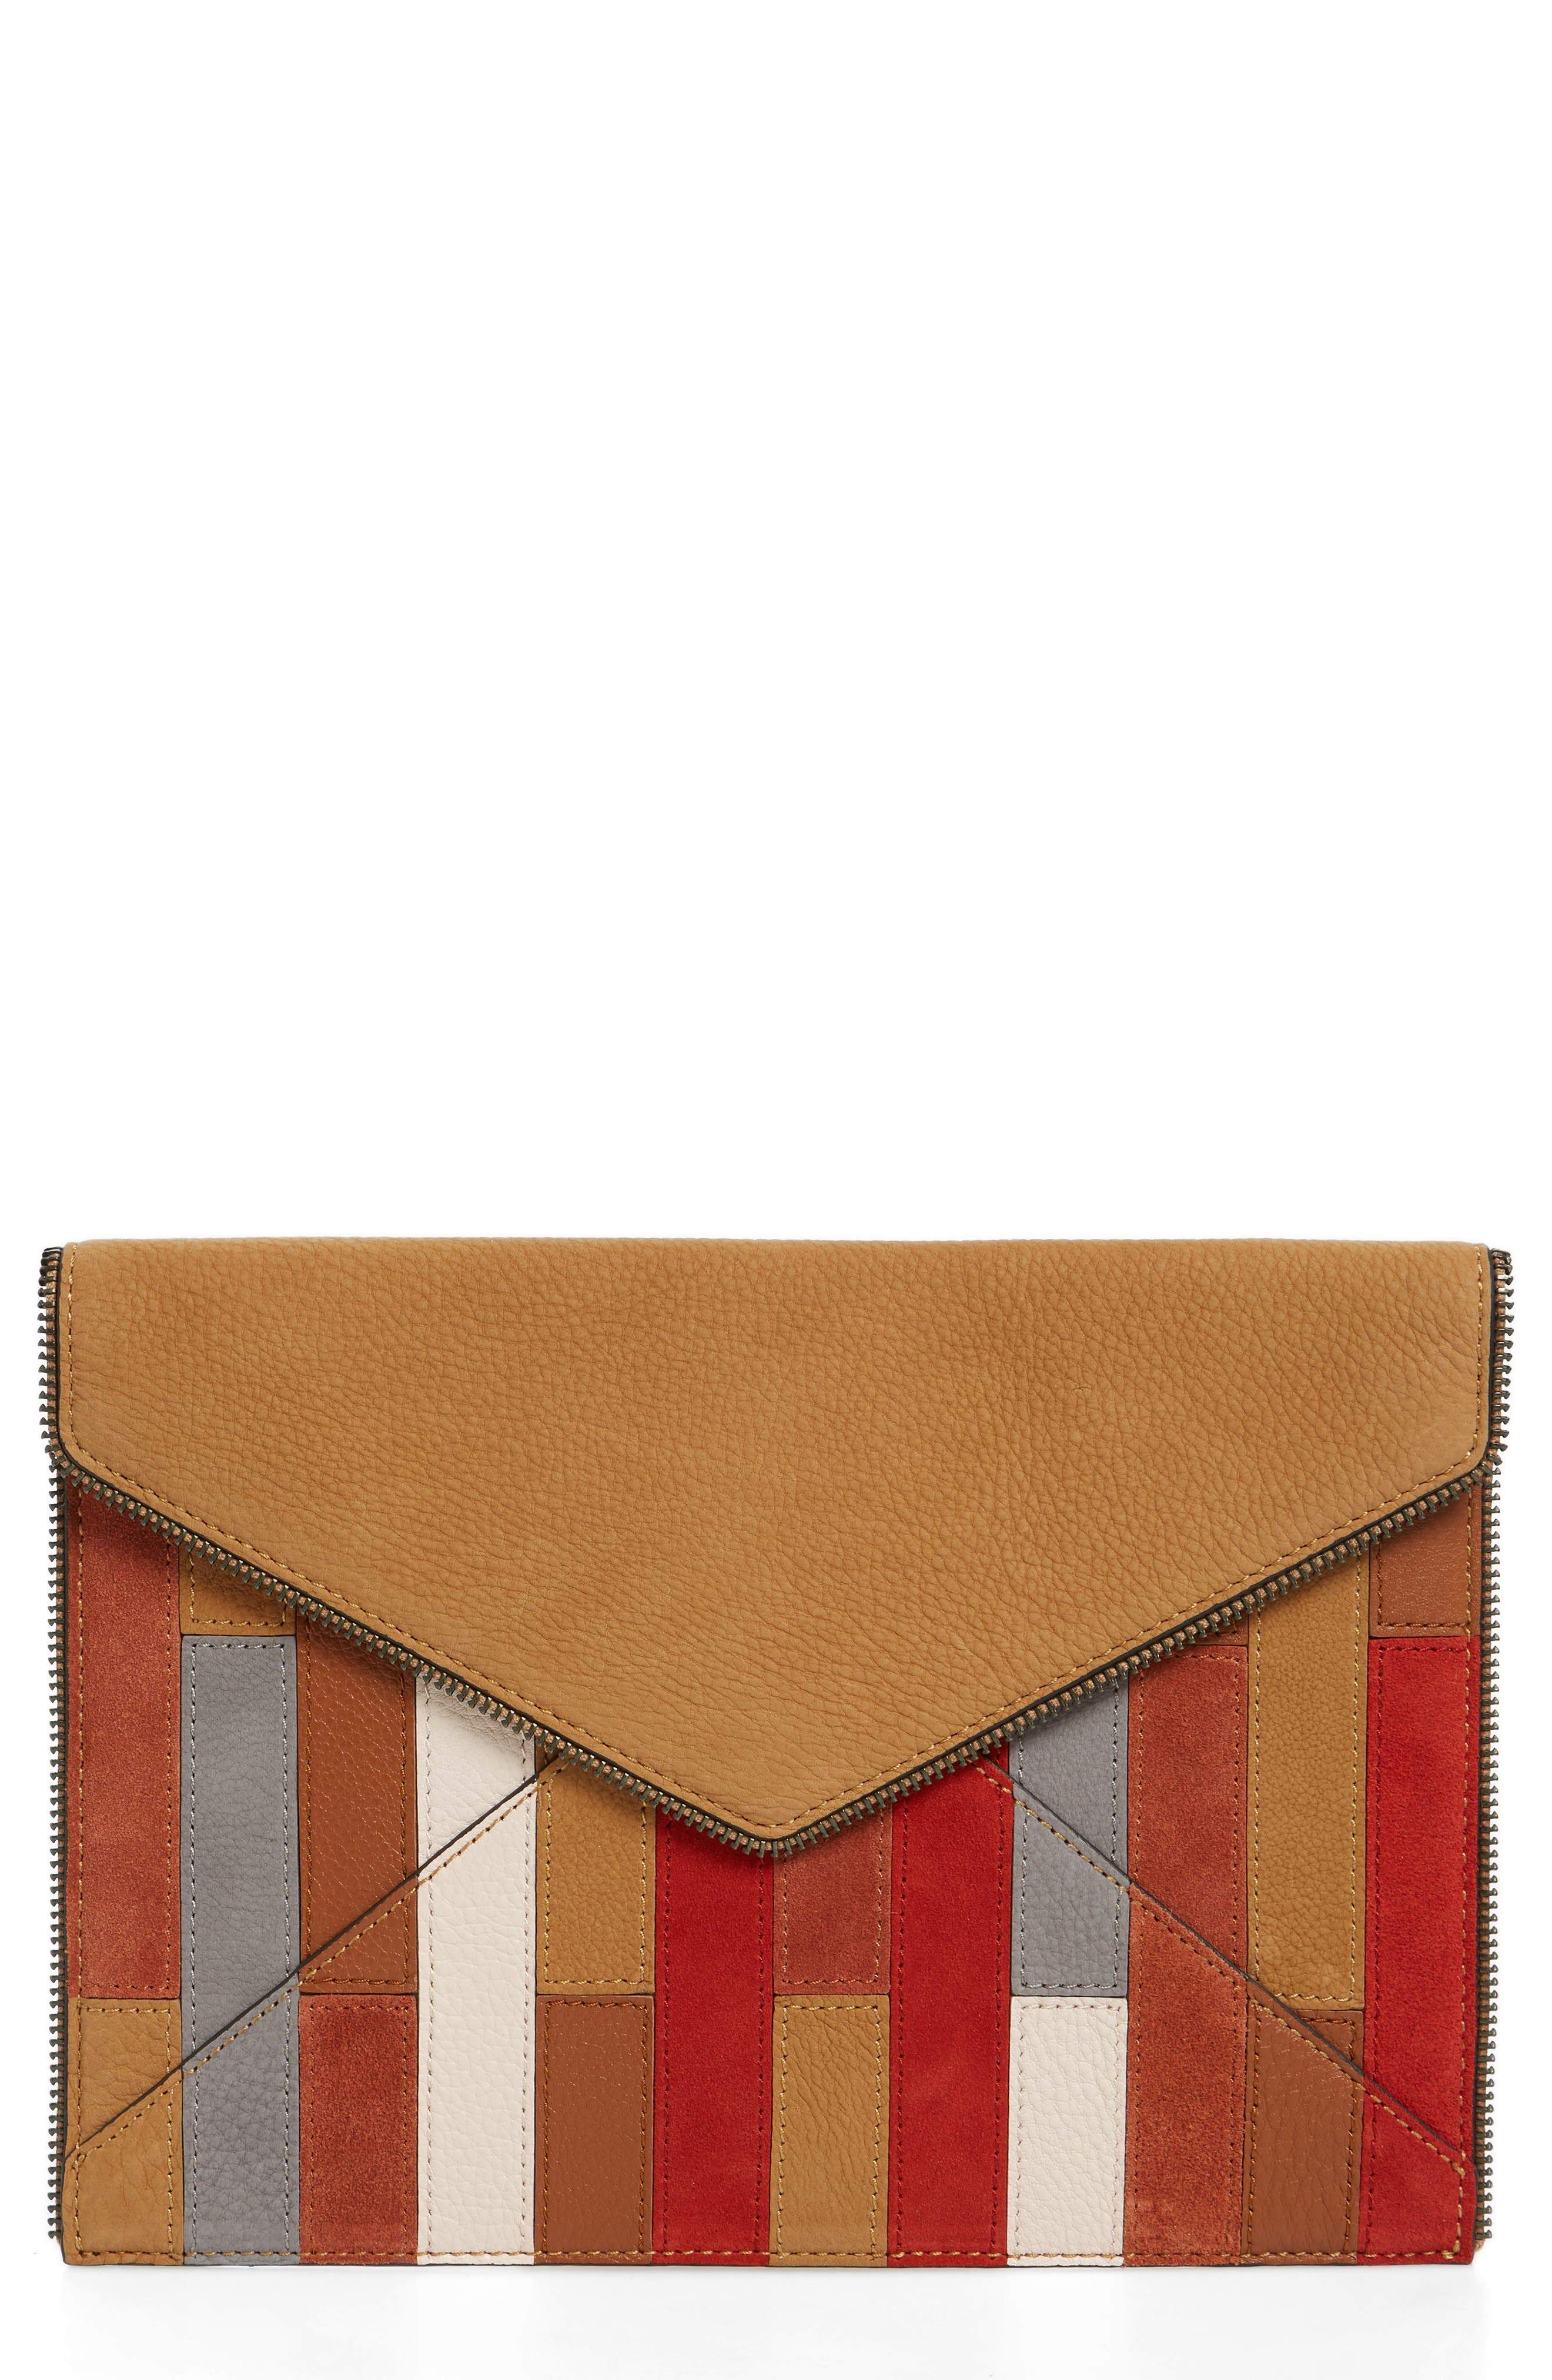 REBECCA MINKOFF Leo Leather Envelope Clutch, Main, color, 210